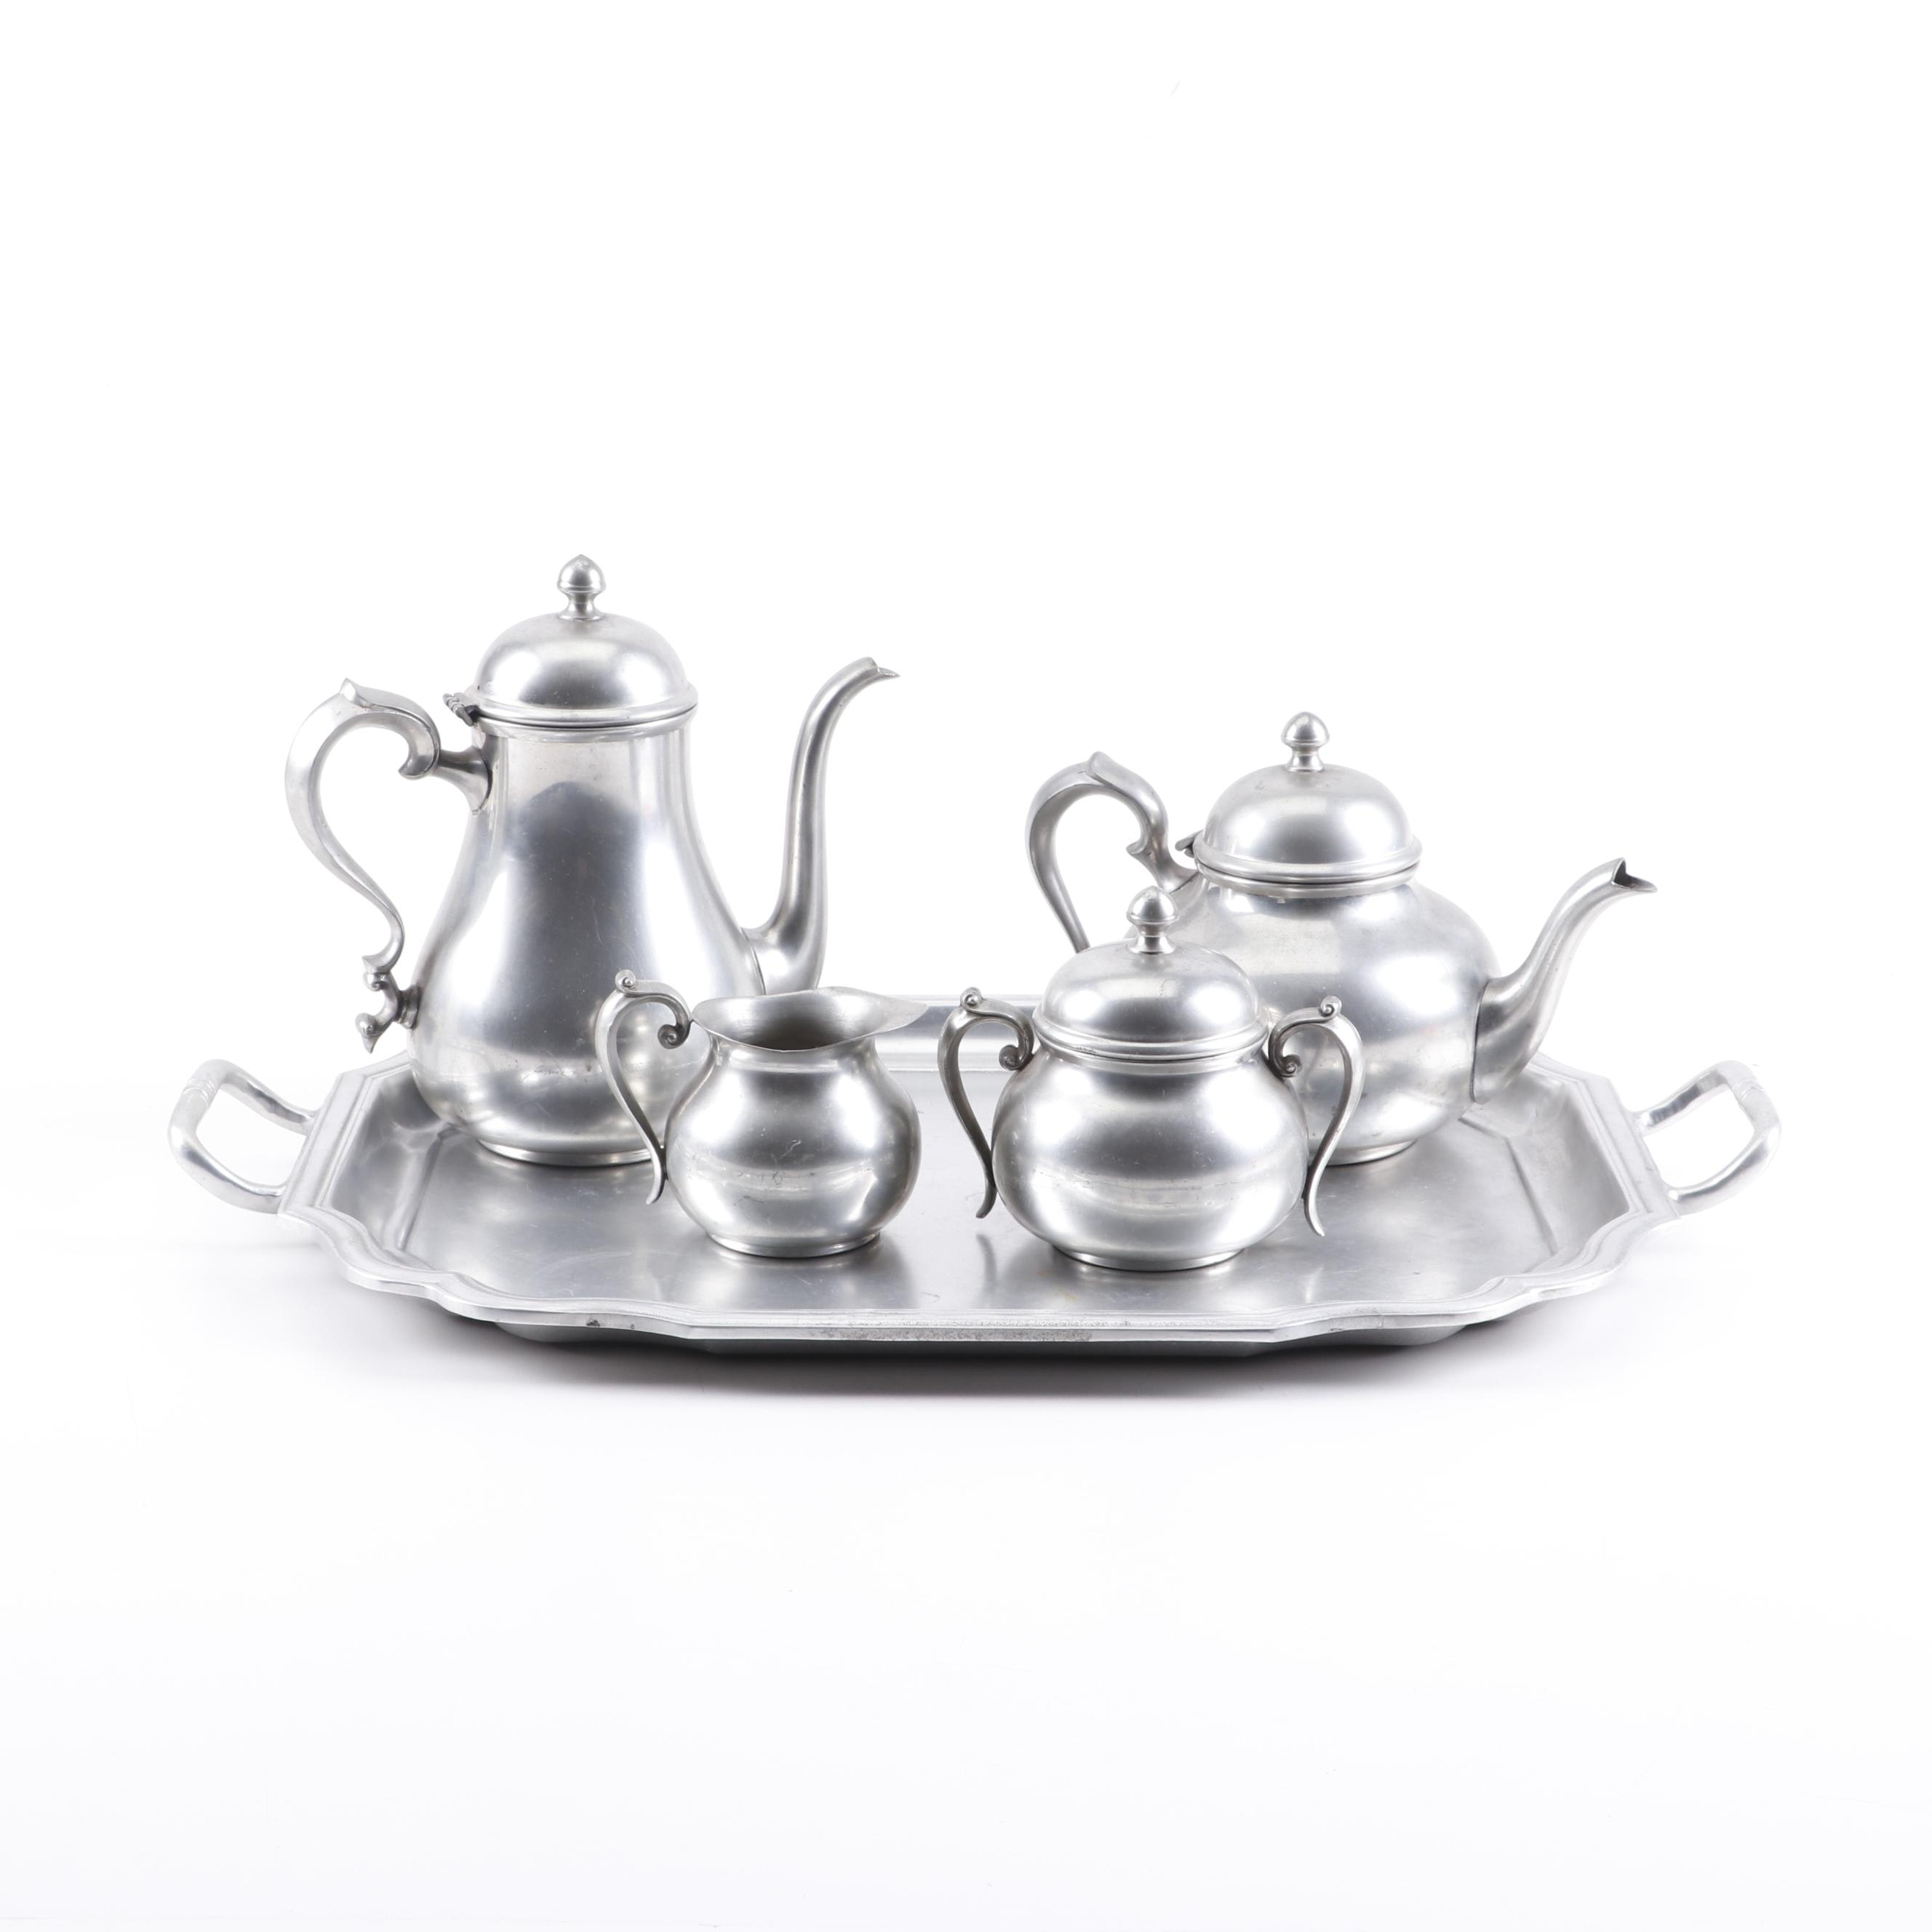 Towle Pewter Tea Set with Wilton Columbia Service Tray